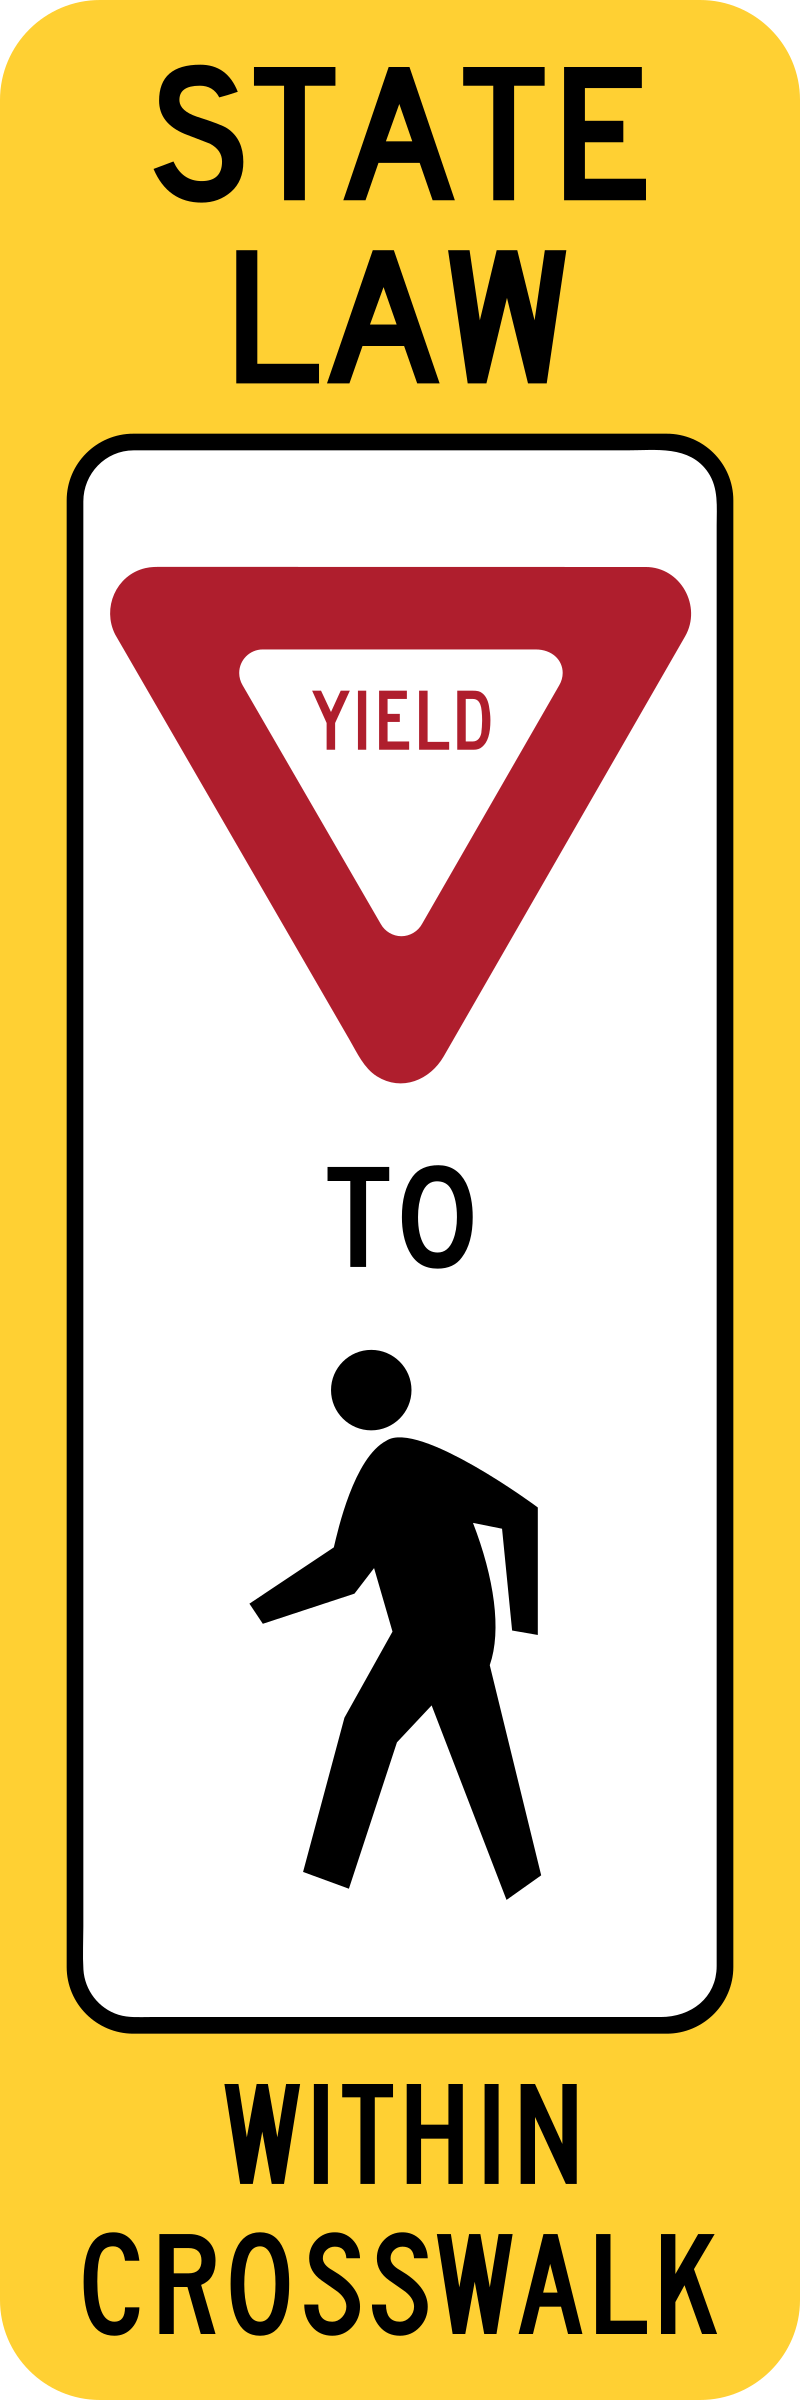 Yield To Pedestrians In Crosswalk Sign (State Law Version, Obsolete, U.S.A.) by jonathan357